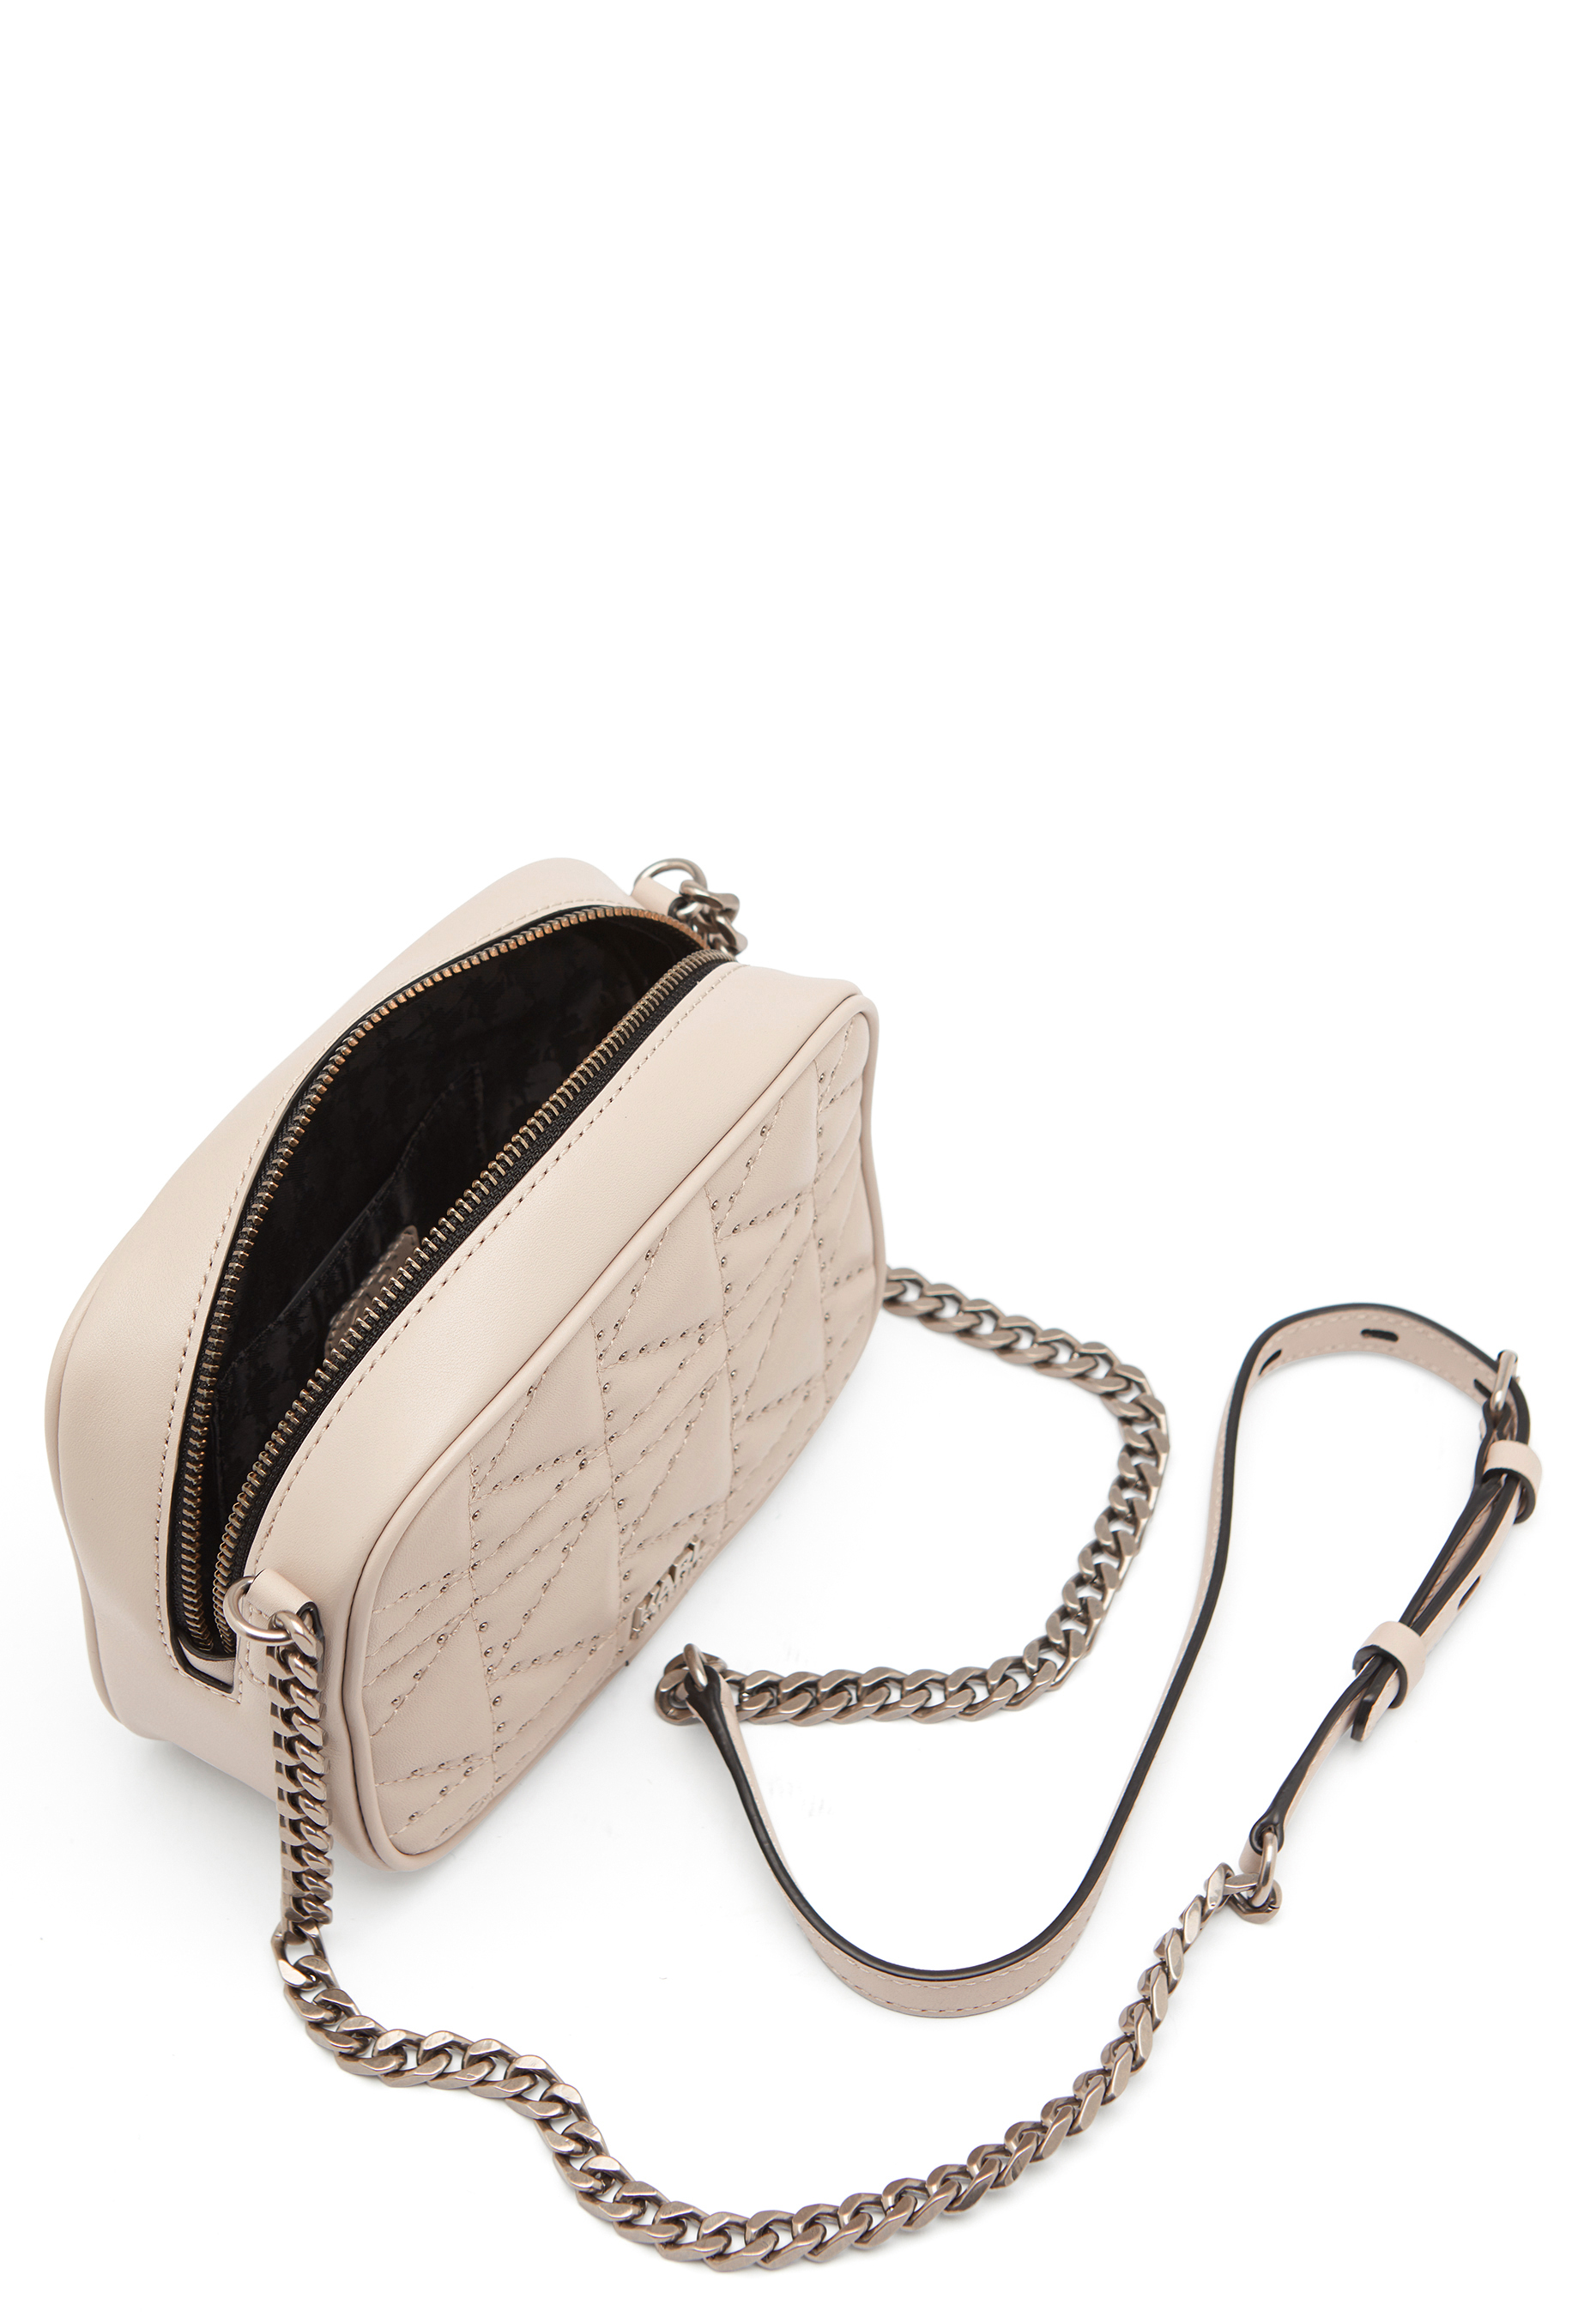 04790c3631 Karl Lagerfeld Quilted Stud Camera Bag Taupe - Bubbleroom